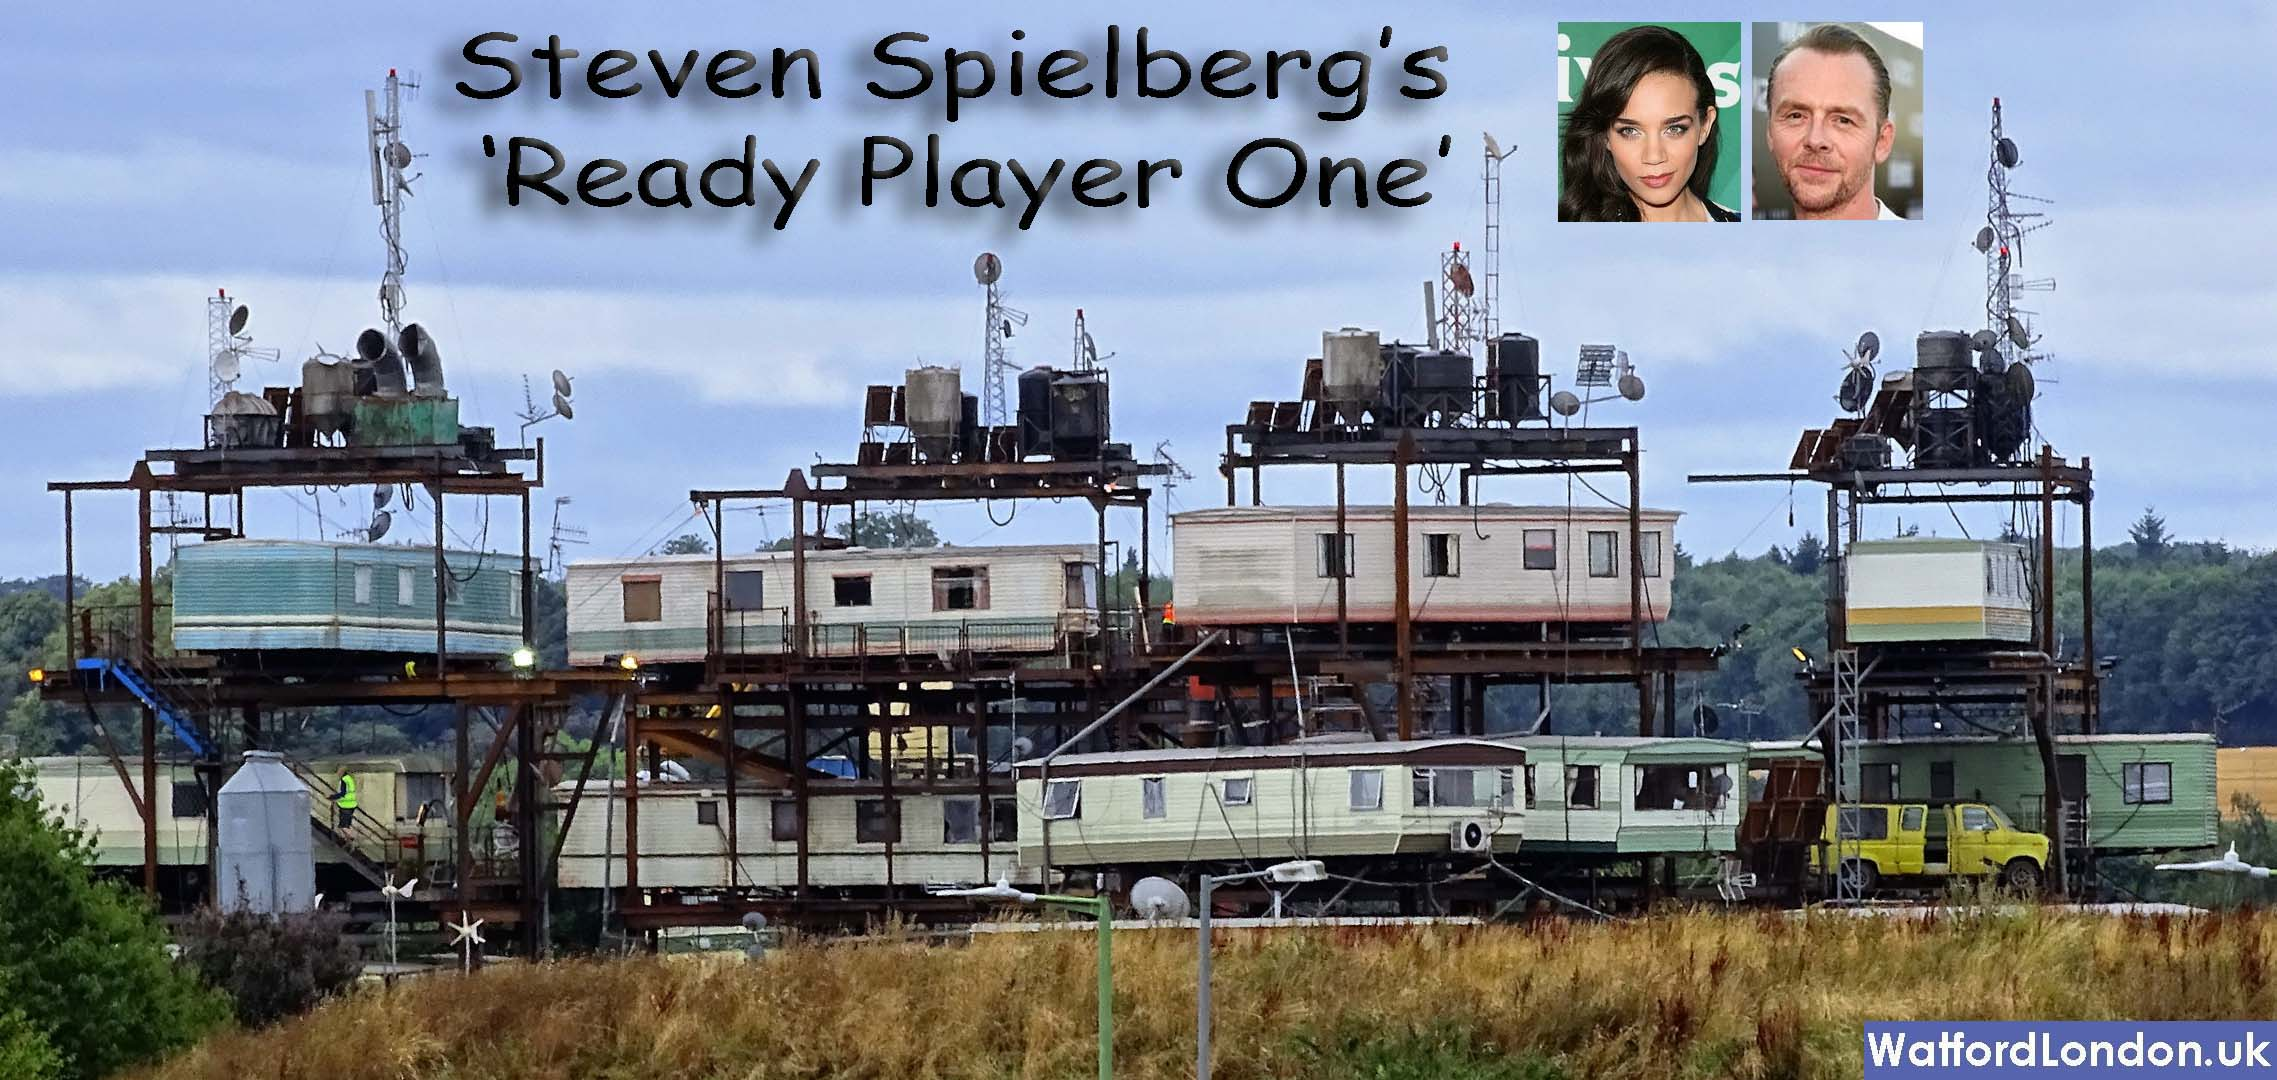 The New Steven Spielberg's 'Ready Player One' Film Set has begun production in Watford.